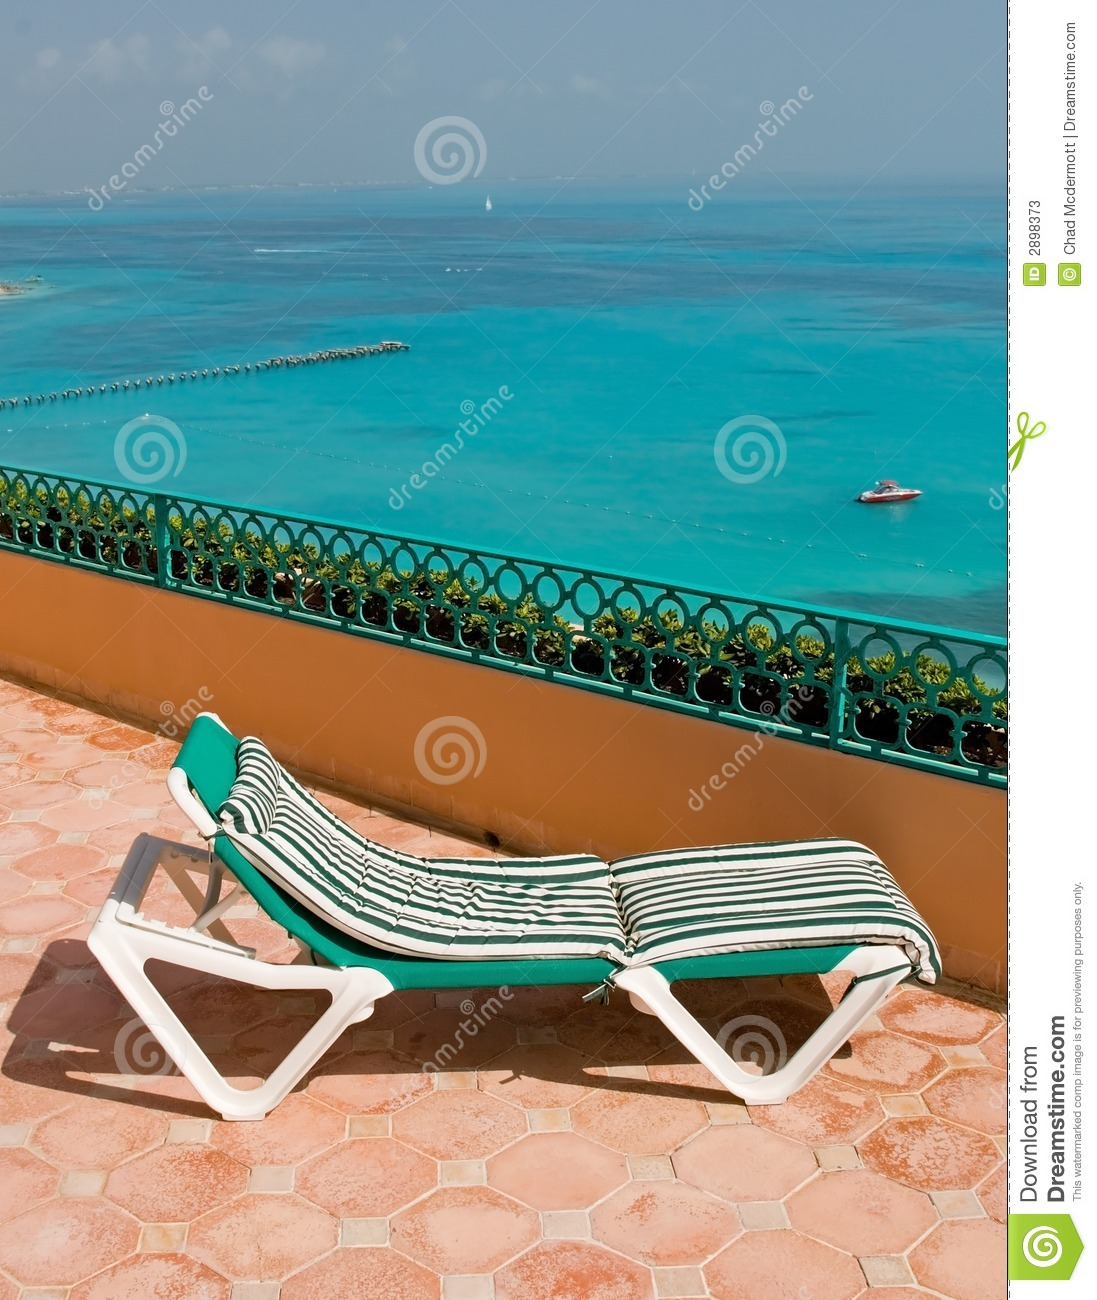 resort balcony lounge chairs stock photos image 2898373. Black Bedroom Furniture Sets. Home Design Ideas